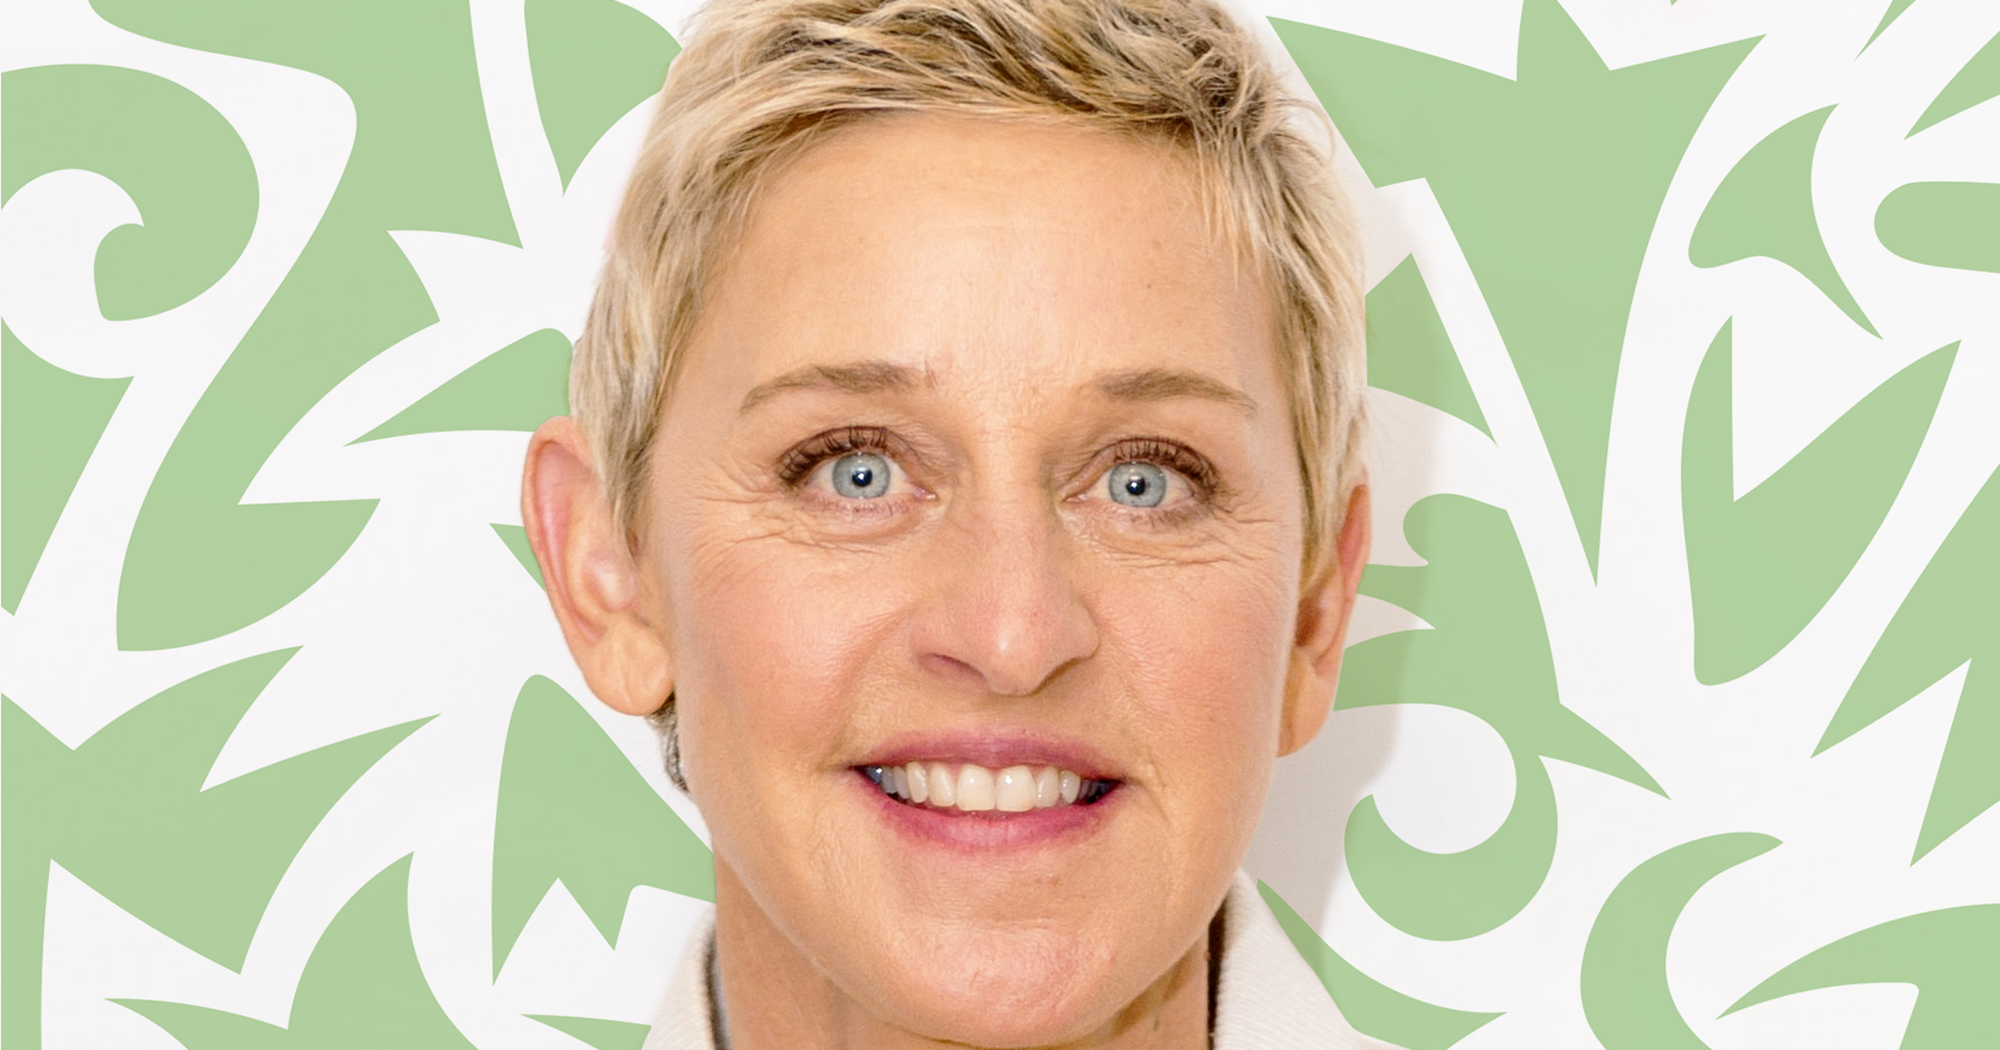 20 Years Ago, Ellen DeGeneres Made History For The LGBTQ Community